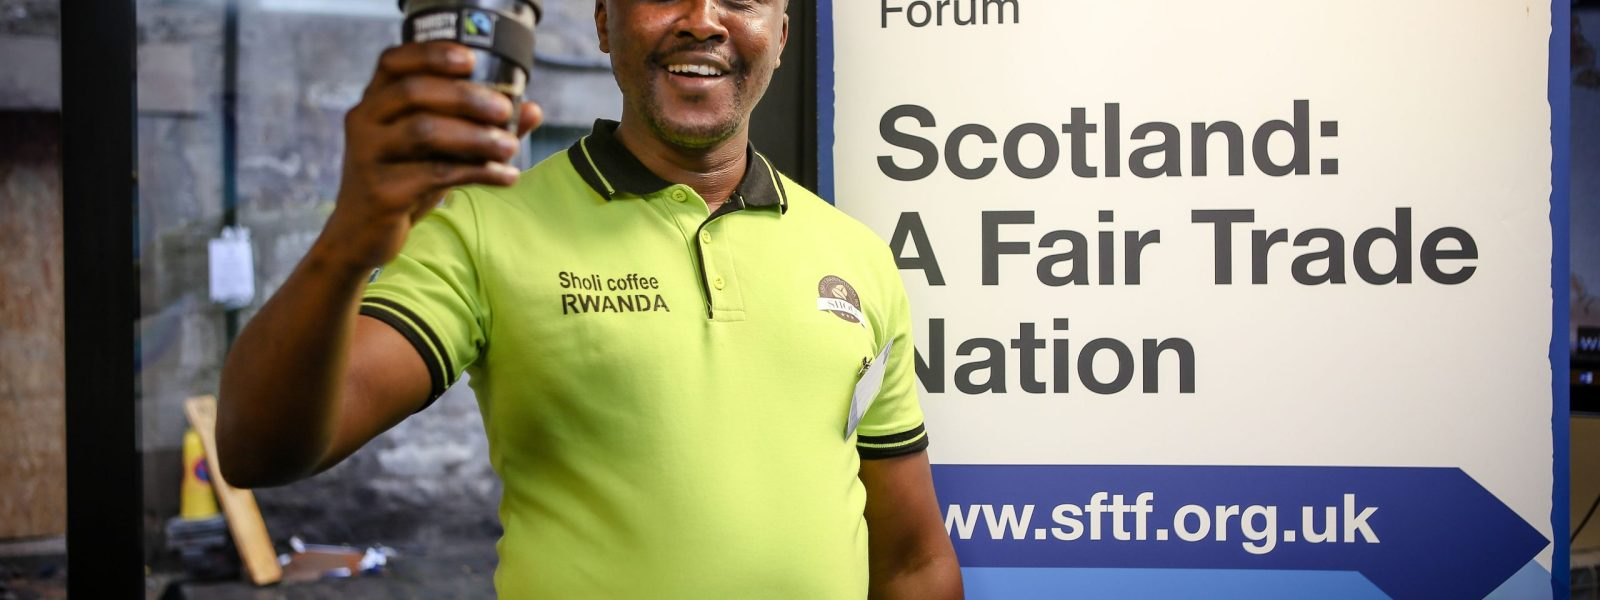 A man holding a Fair Trade cup in front of a Fair Trade banner.